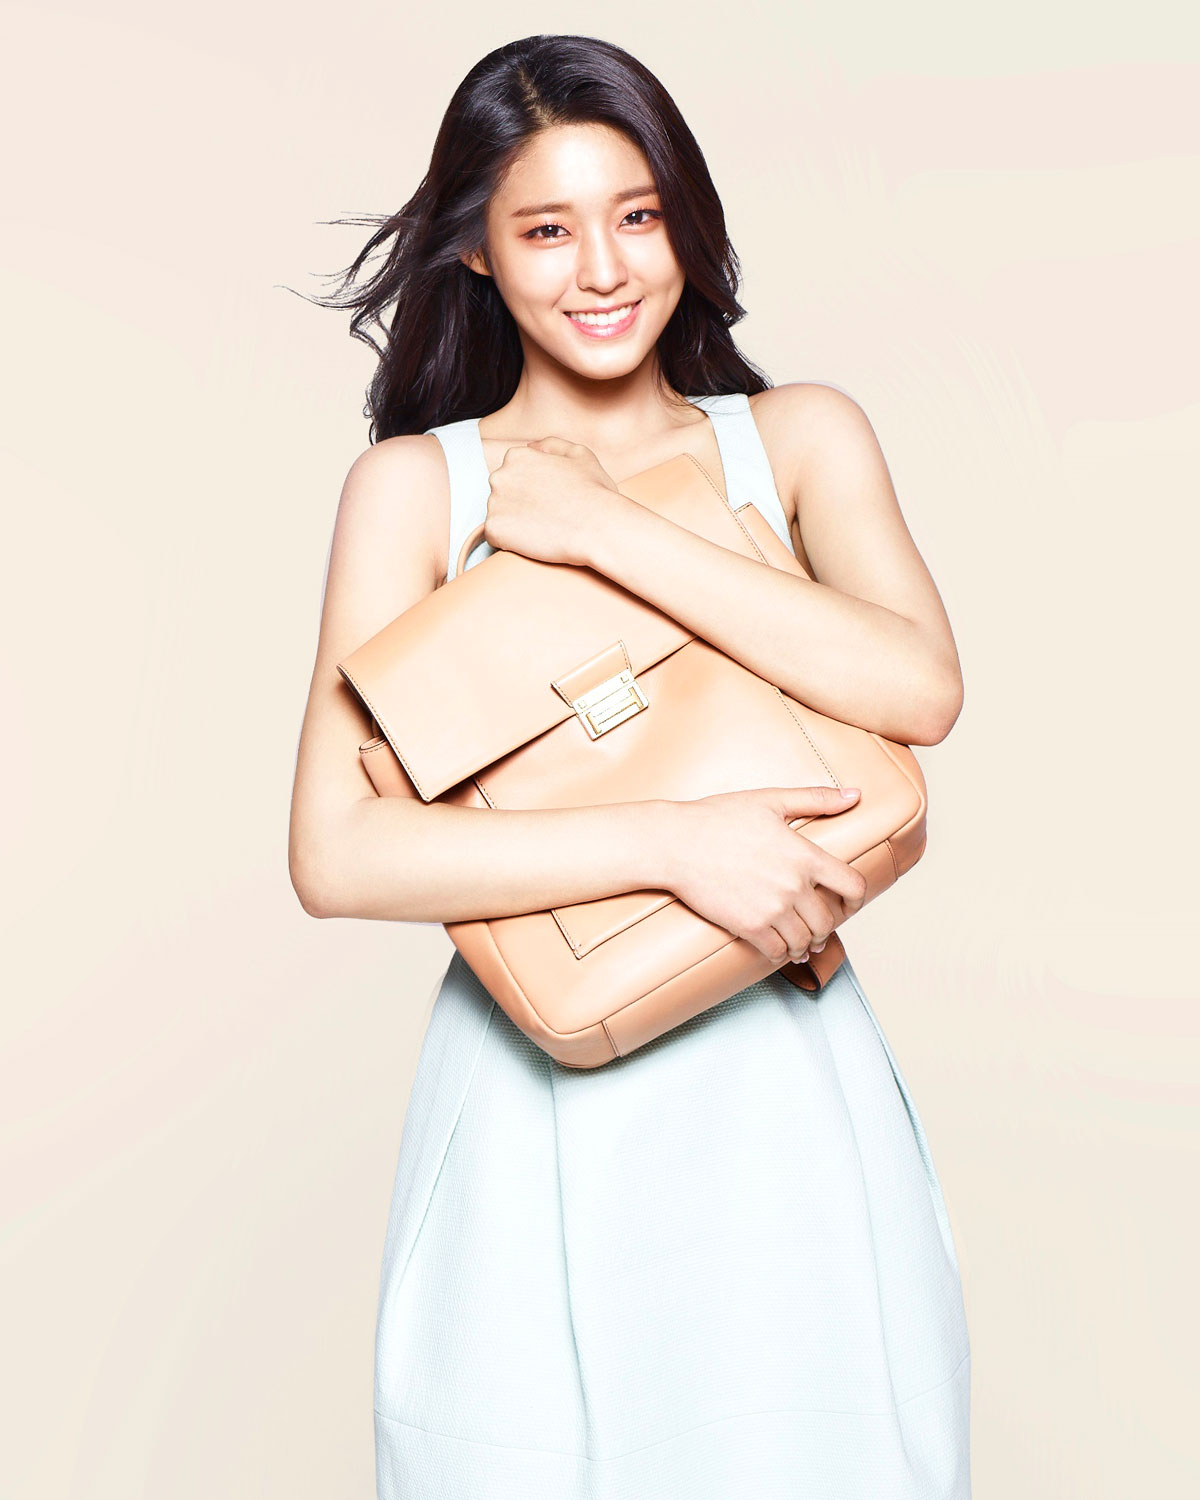 AOA Seolhyun Hazzys handbags advertisement